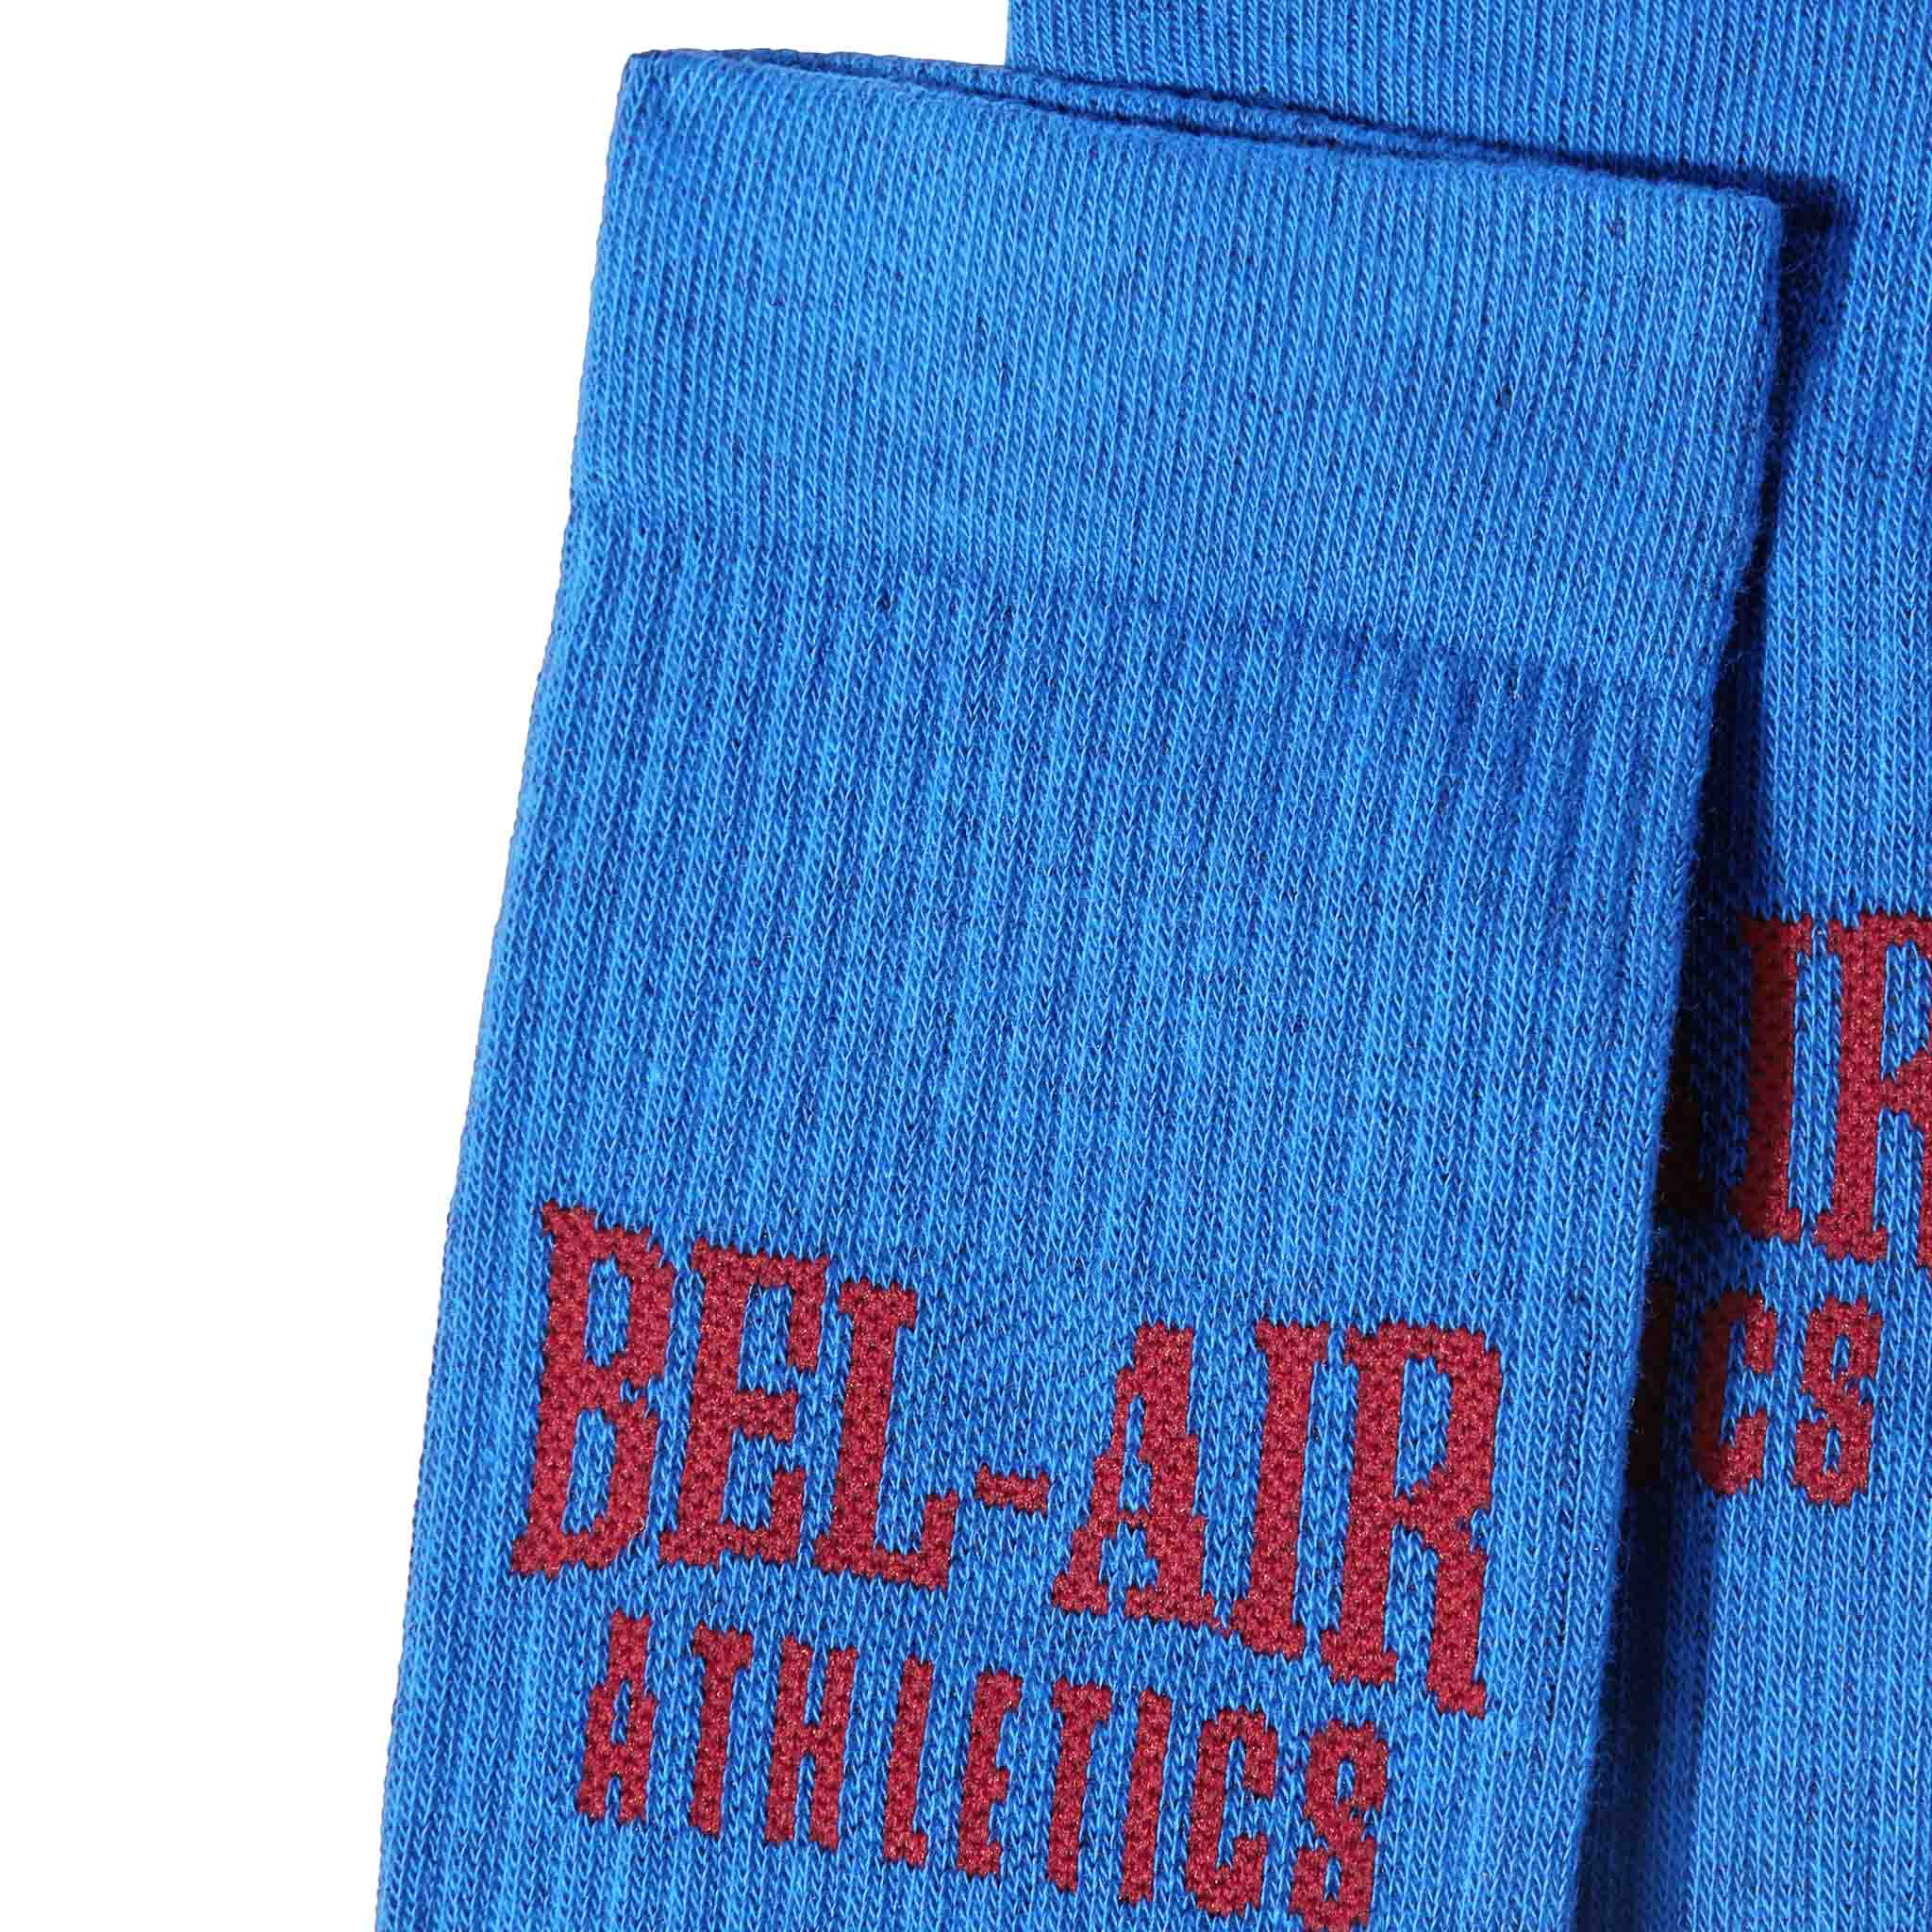 Bel Air Athletics Socks - Varsity Blue with Academy red jacquard